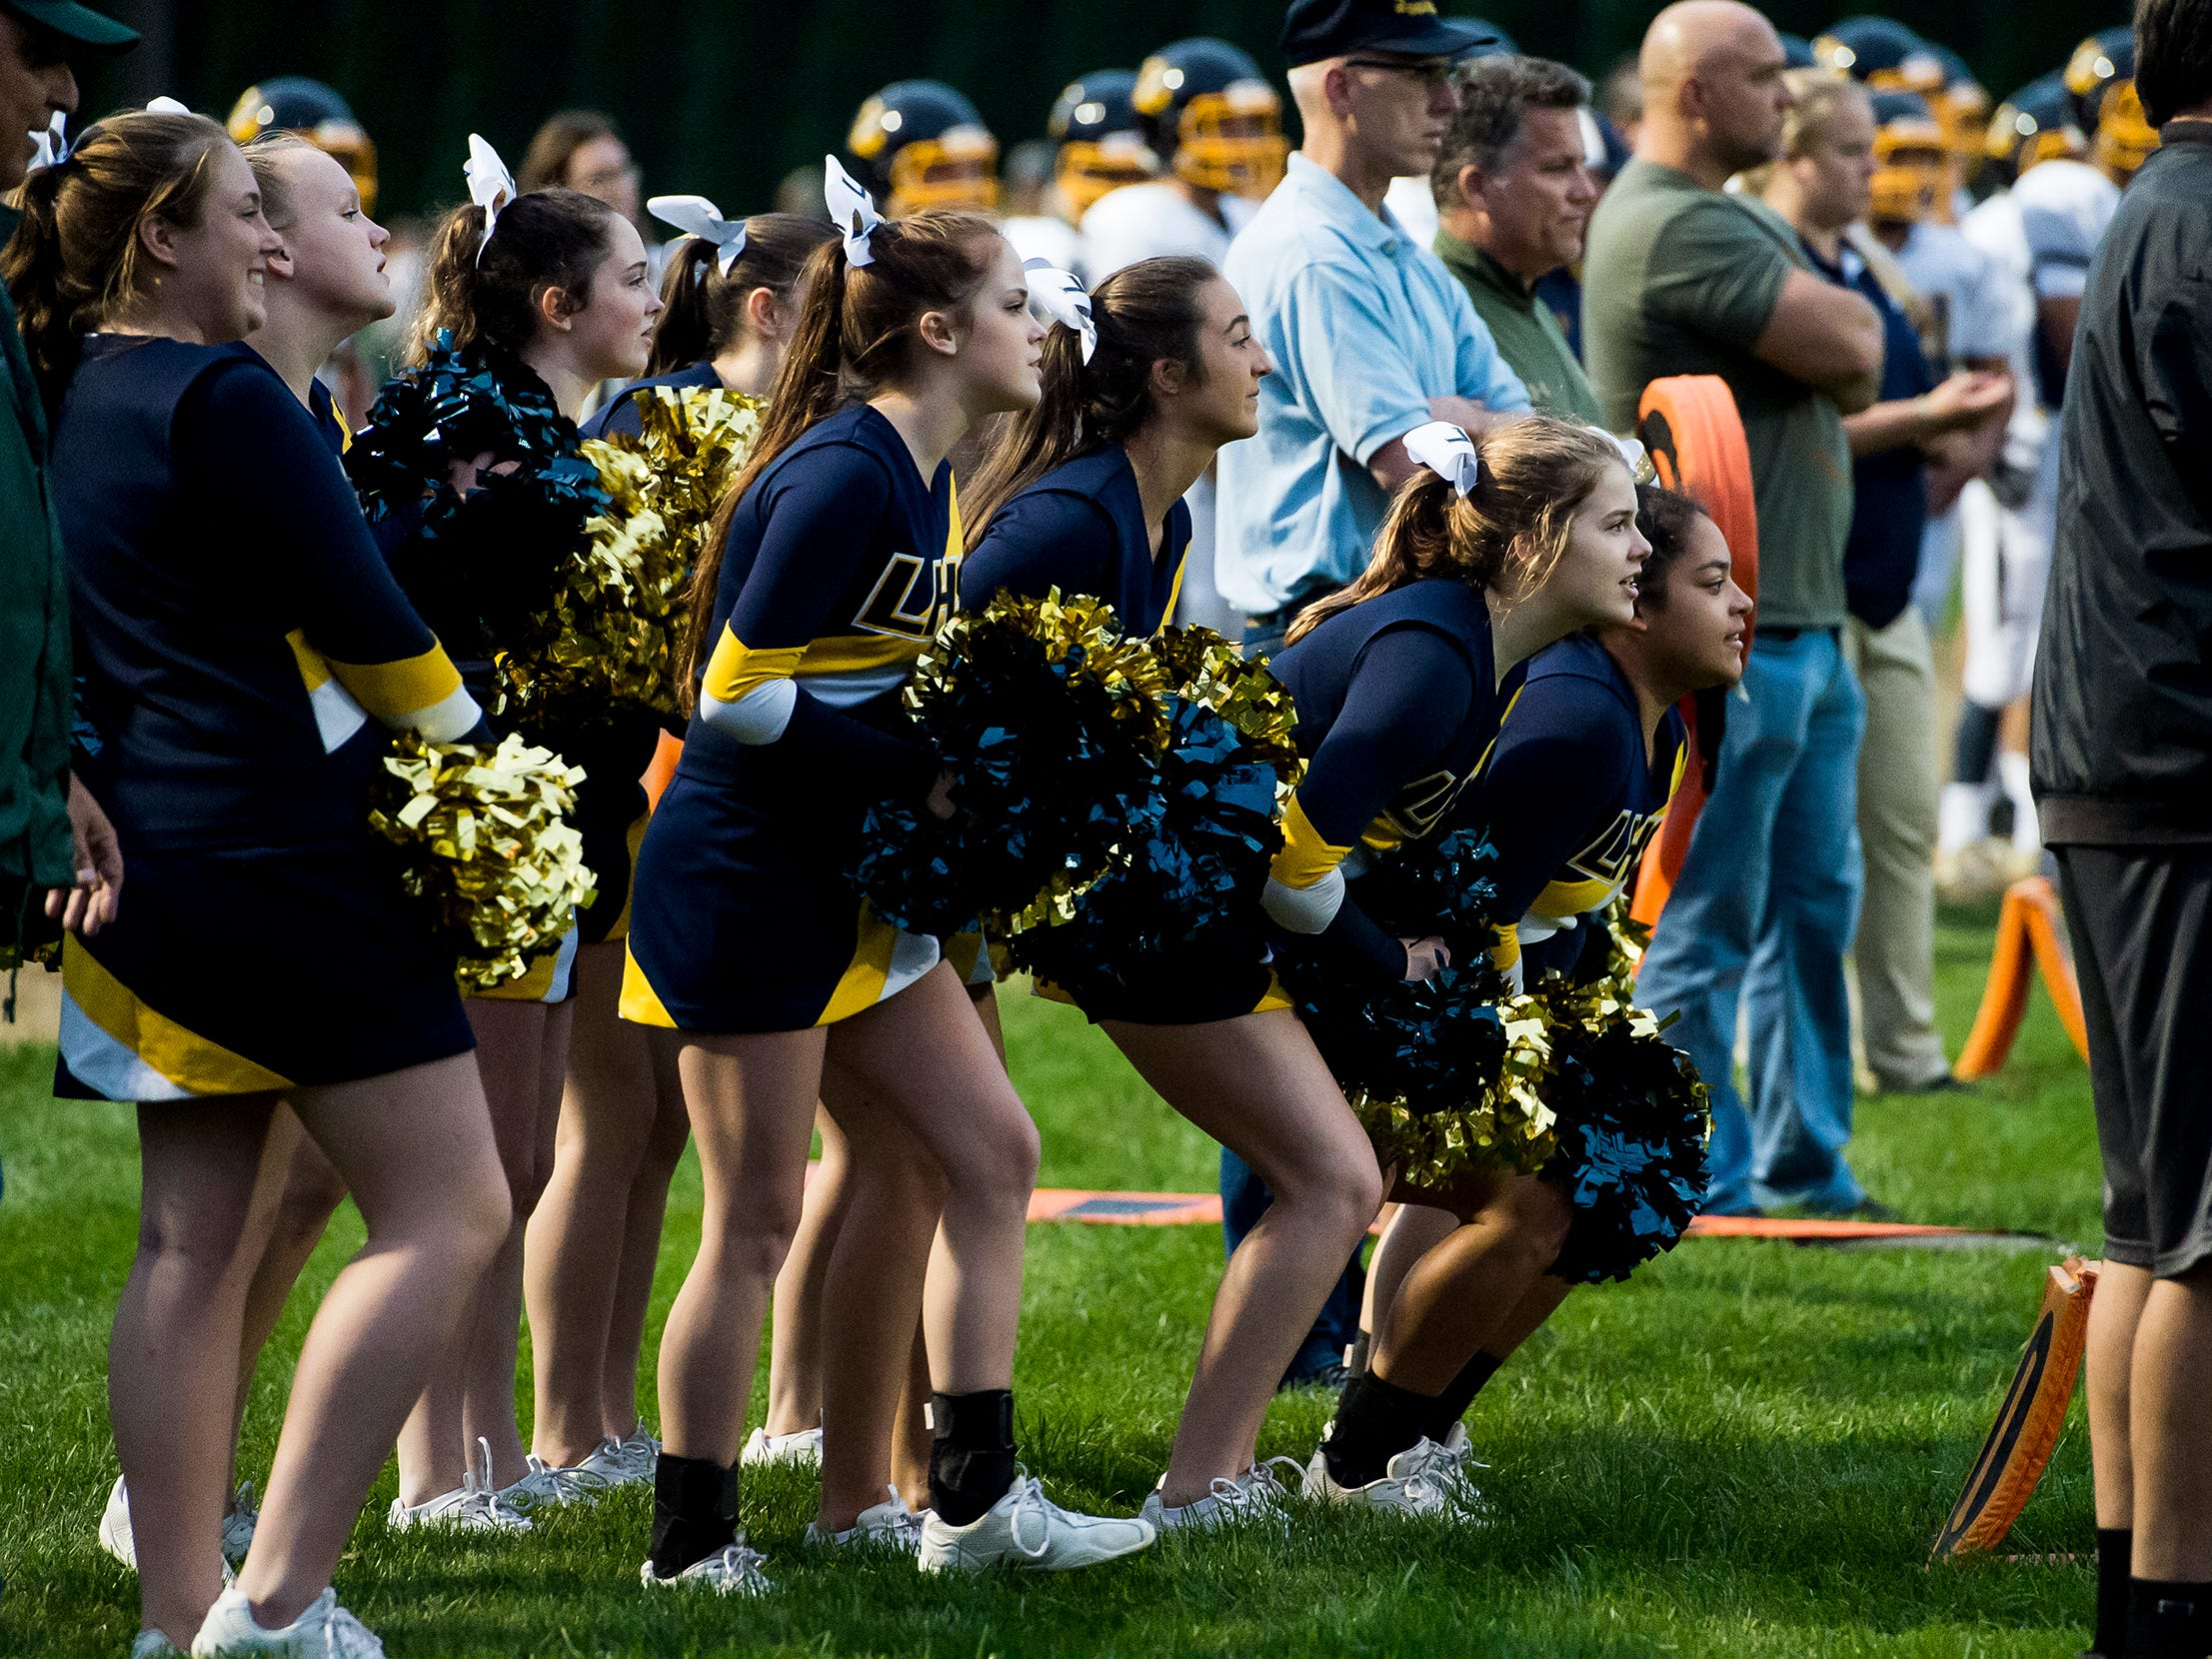 Littlestown cheerleaders look on during a key play in a game against York Catholic on Friday, September 14, 2018. The Bolts lost 22-19.